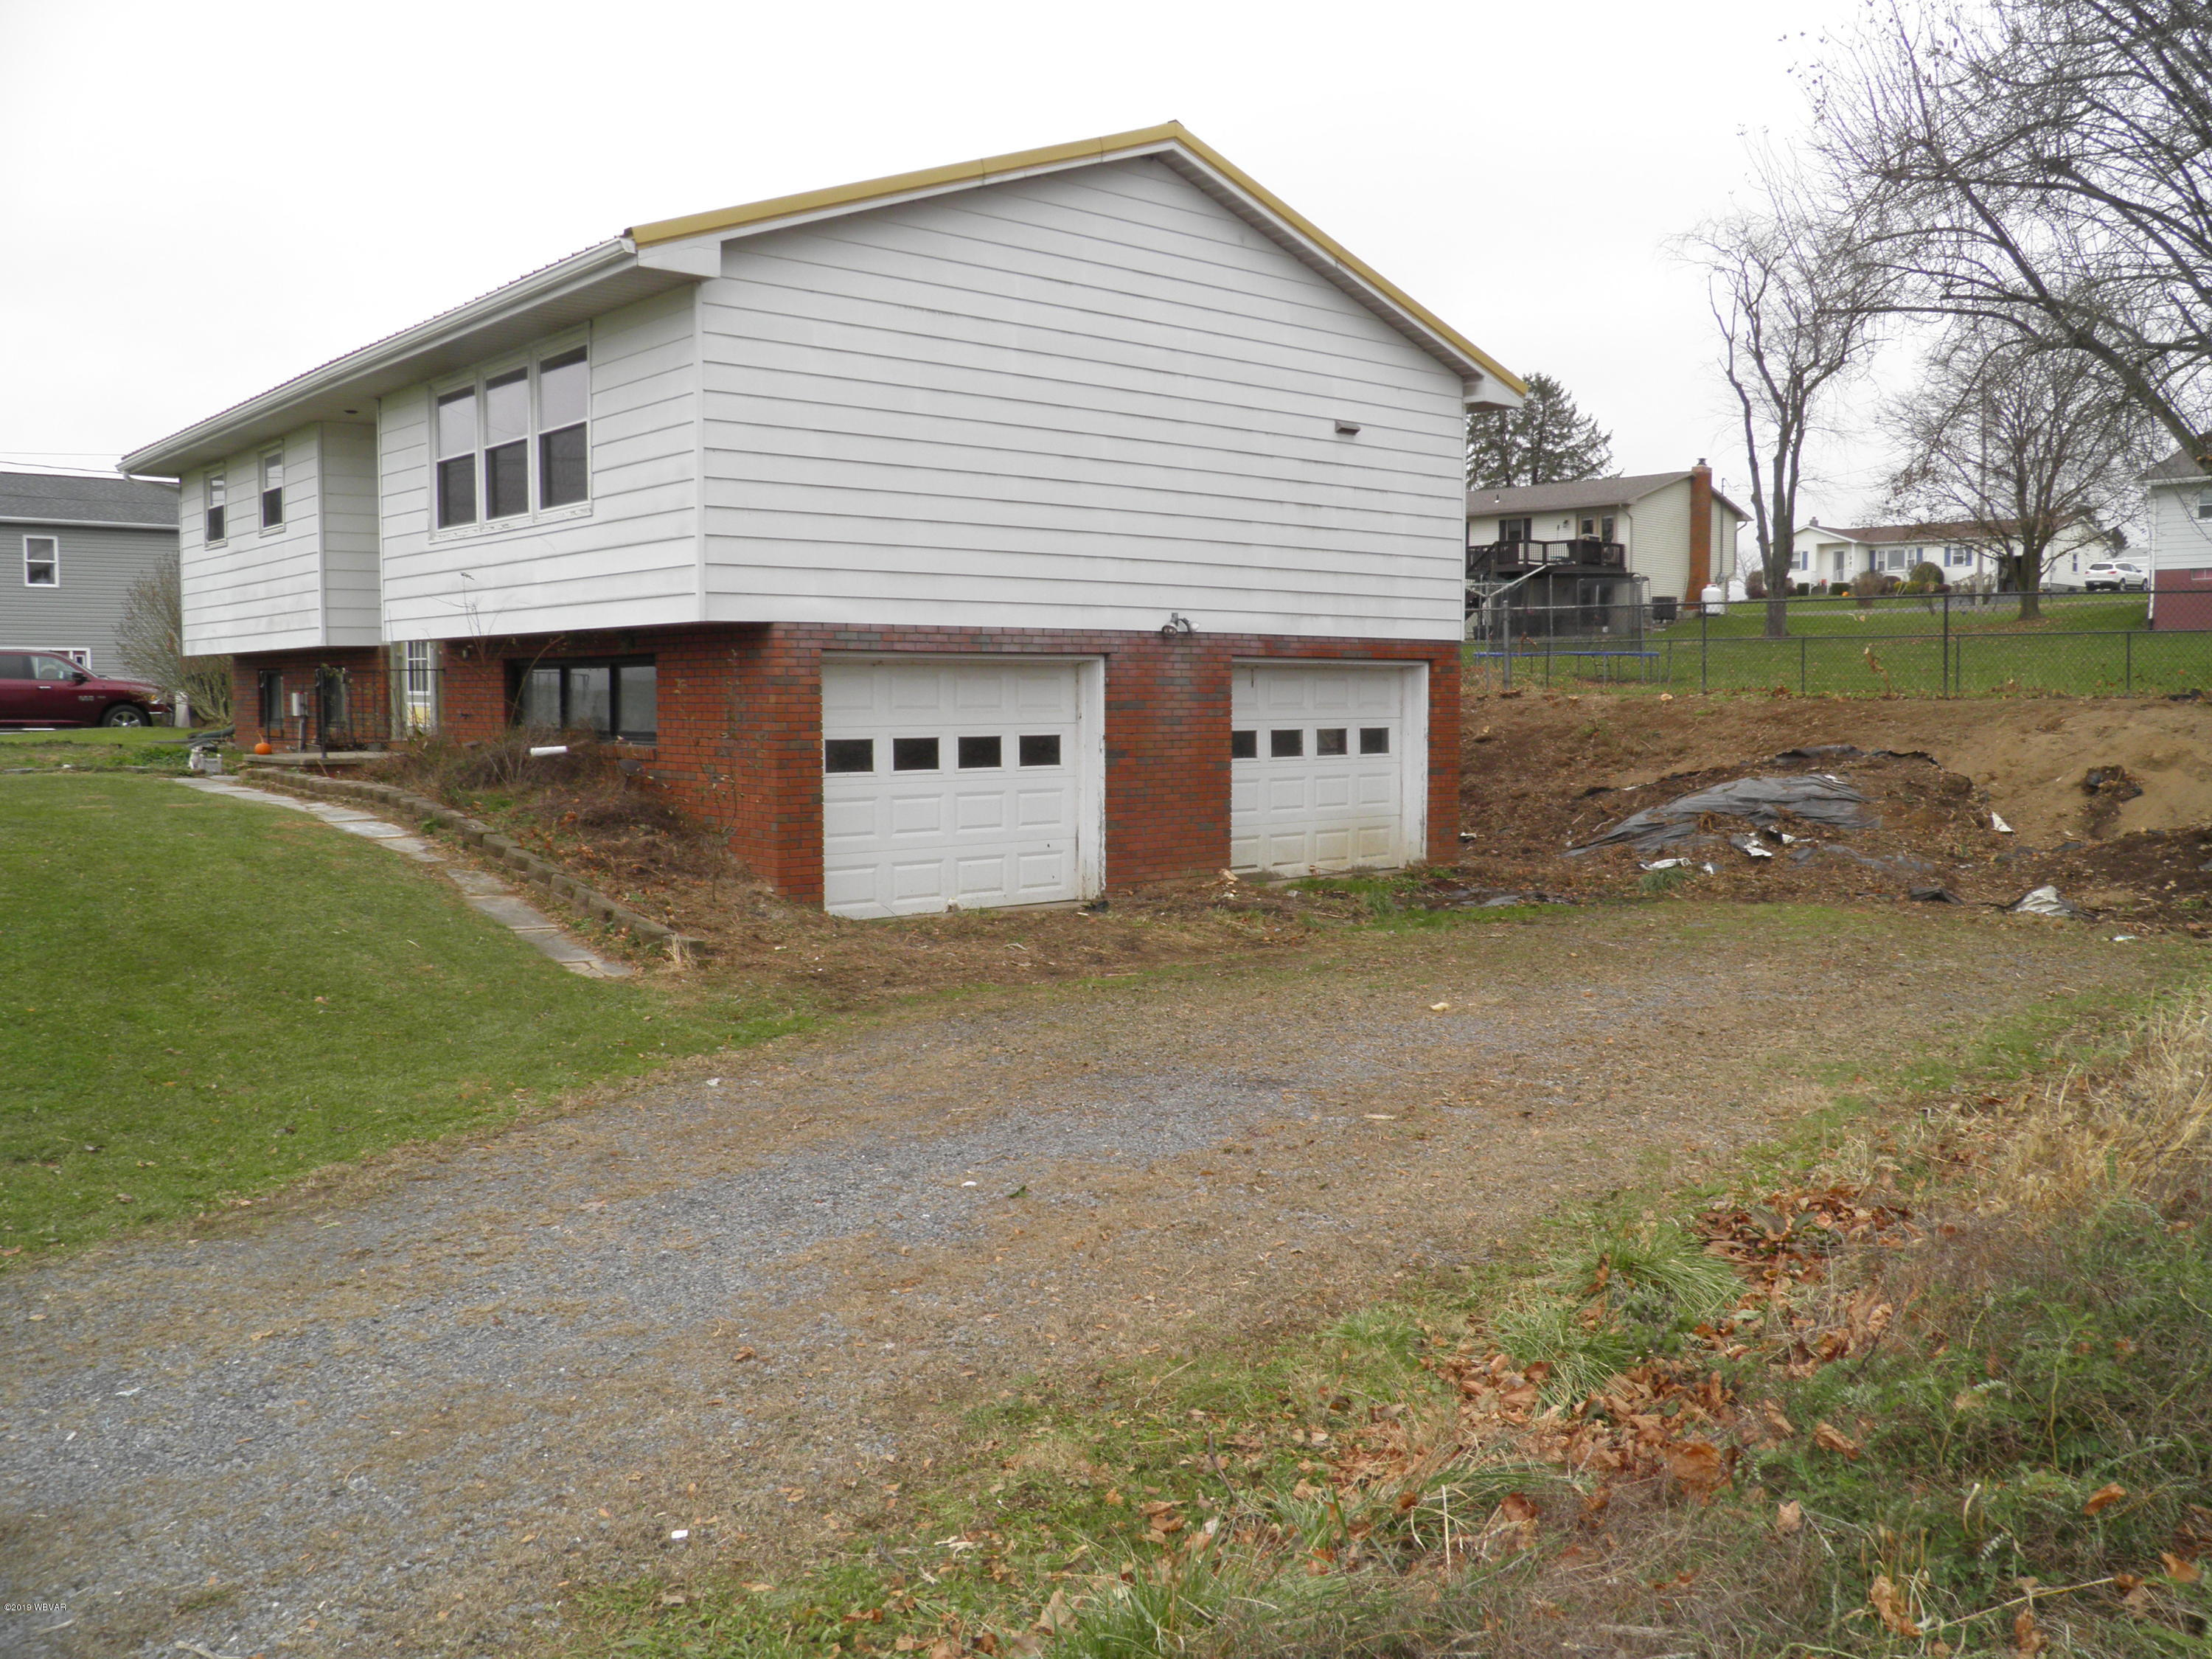 17 CARNATION LANE,Mill Hall,PA 17751,3 Bedrooms Bedrooms,1 BathroomBathrooms,Residential,CARNATION,WB-89108